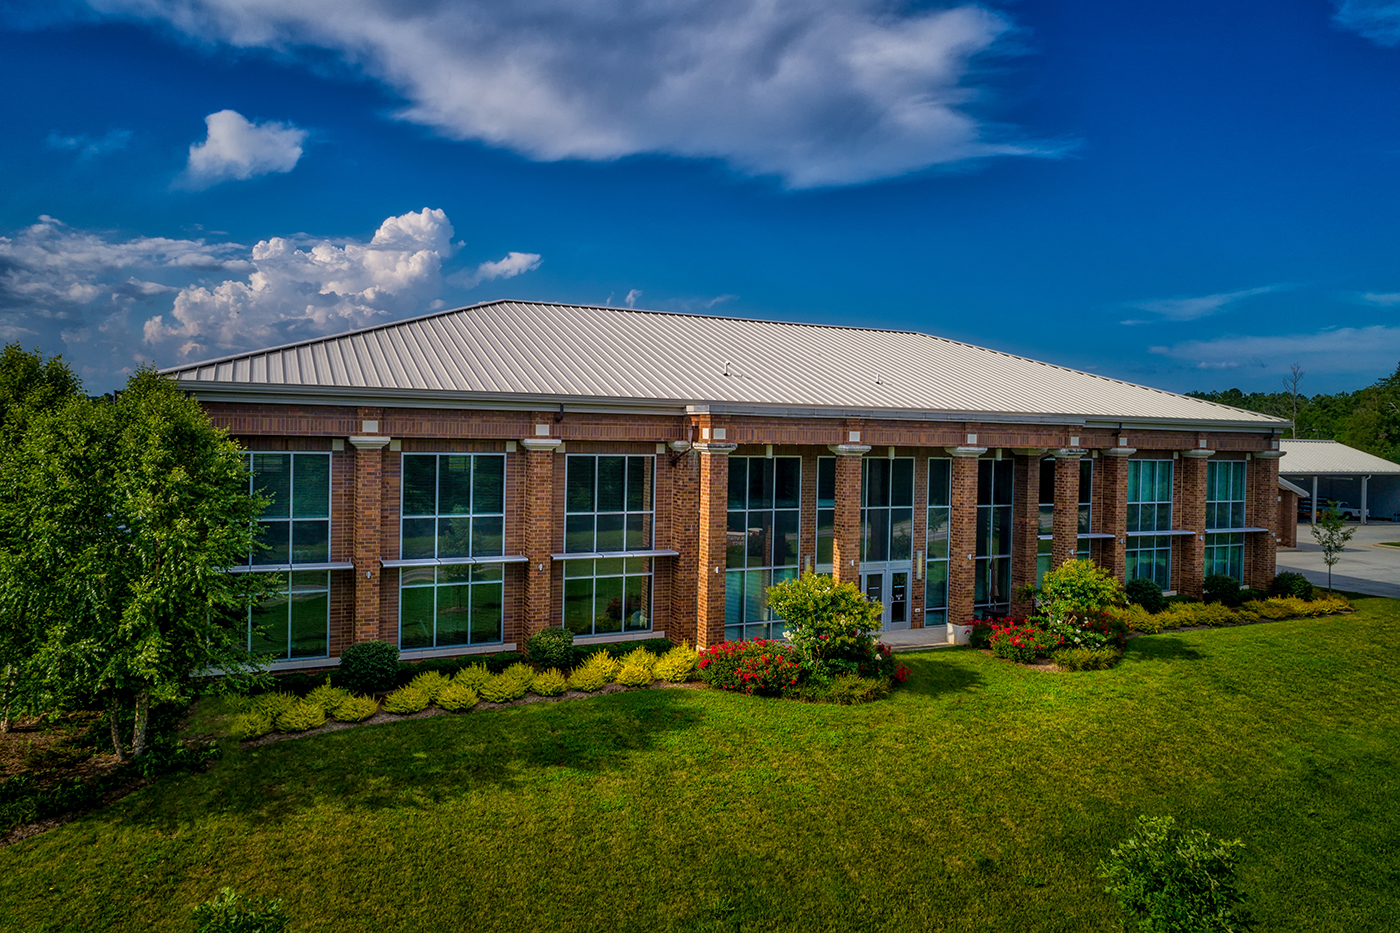 Eastside Utility District   This Class-A office spaces and headquarters for the East Side Utility District in Chattanooga, TN was completed in 2012 and features a 20,000 square foot, 2 story main office as well as a 12,000 square foot building for maintenance and another 5,000 square foot equipment shed – all over a 7 acre tract of land.